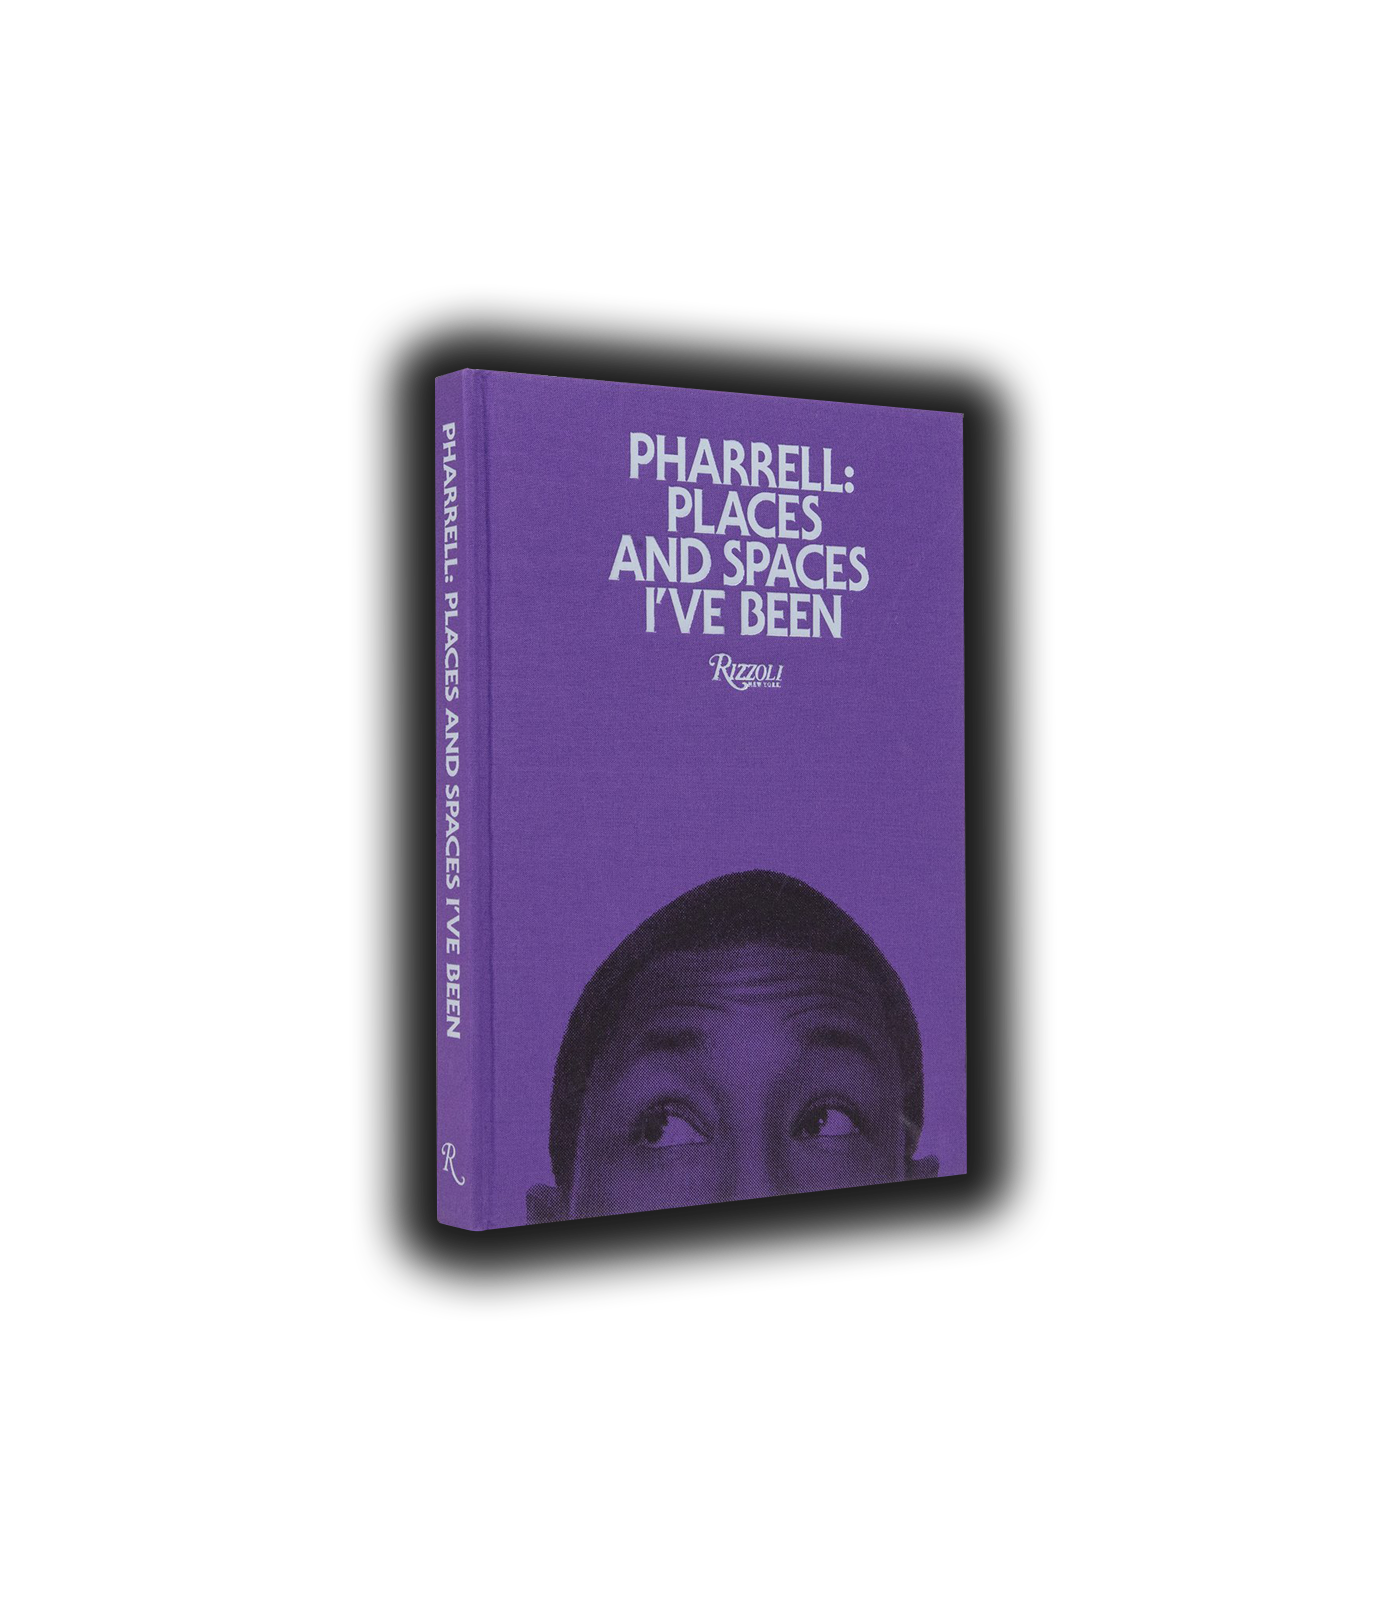 Pharrell: Places and Spaces I've Been Book - Purple